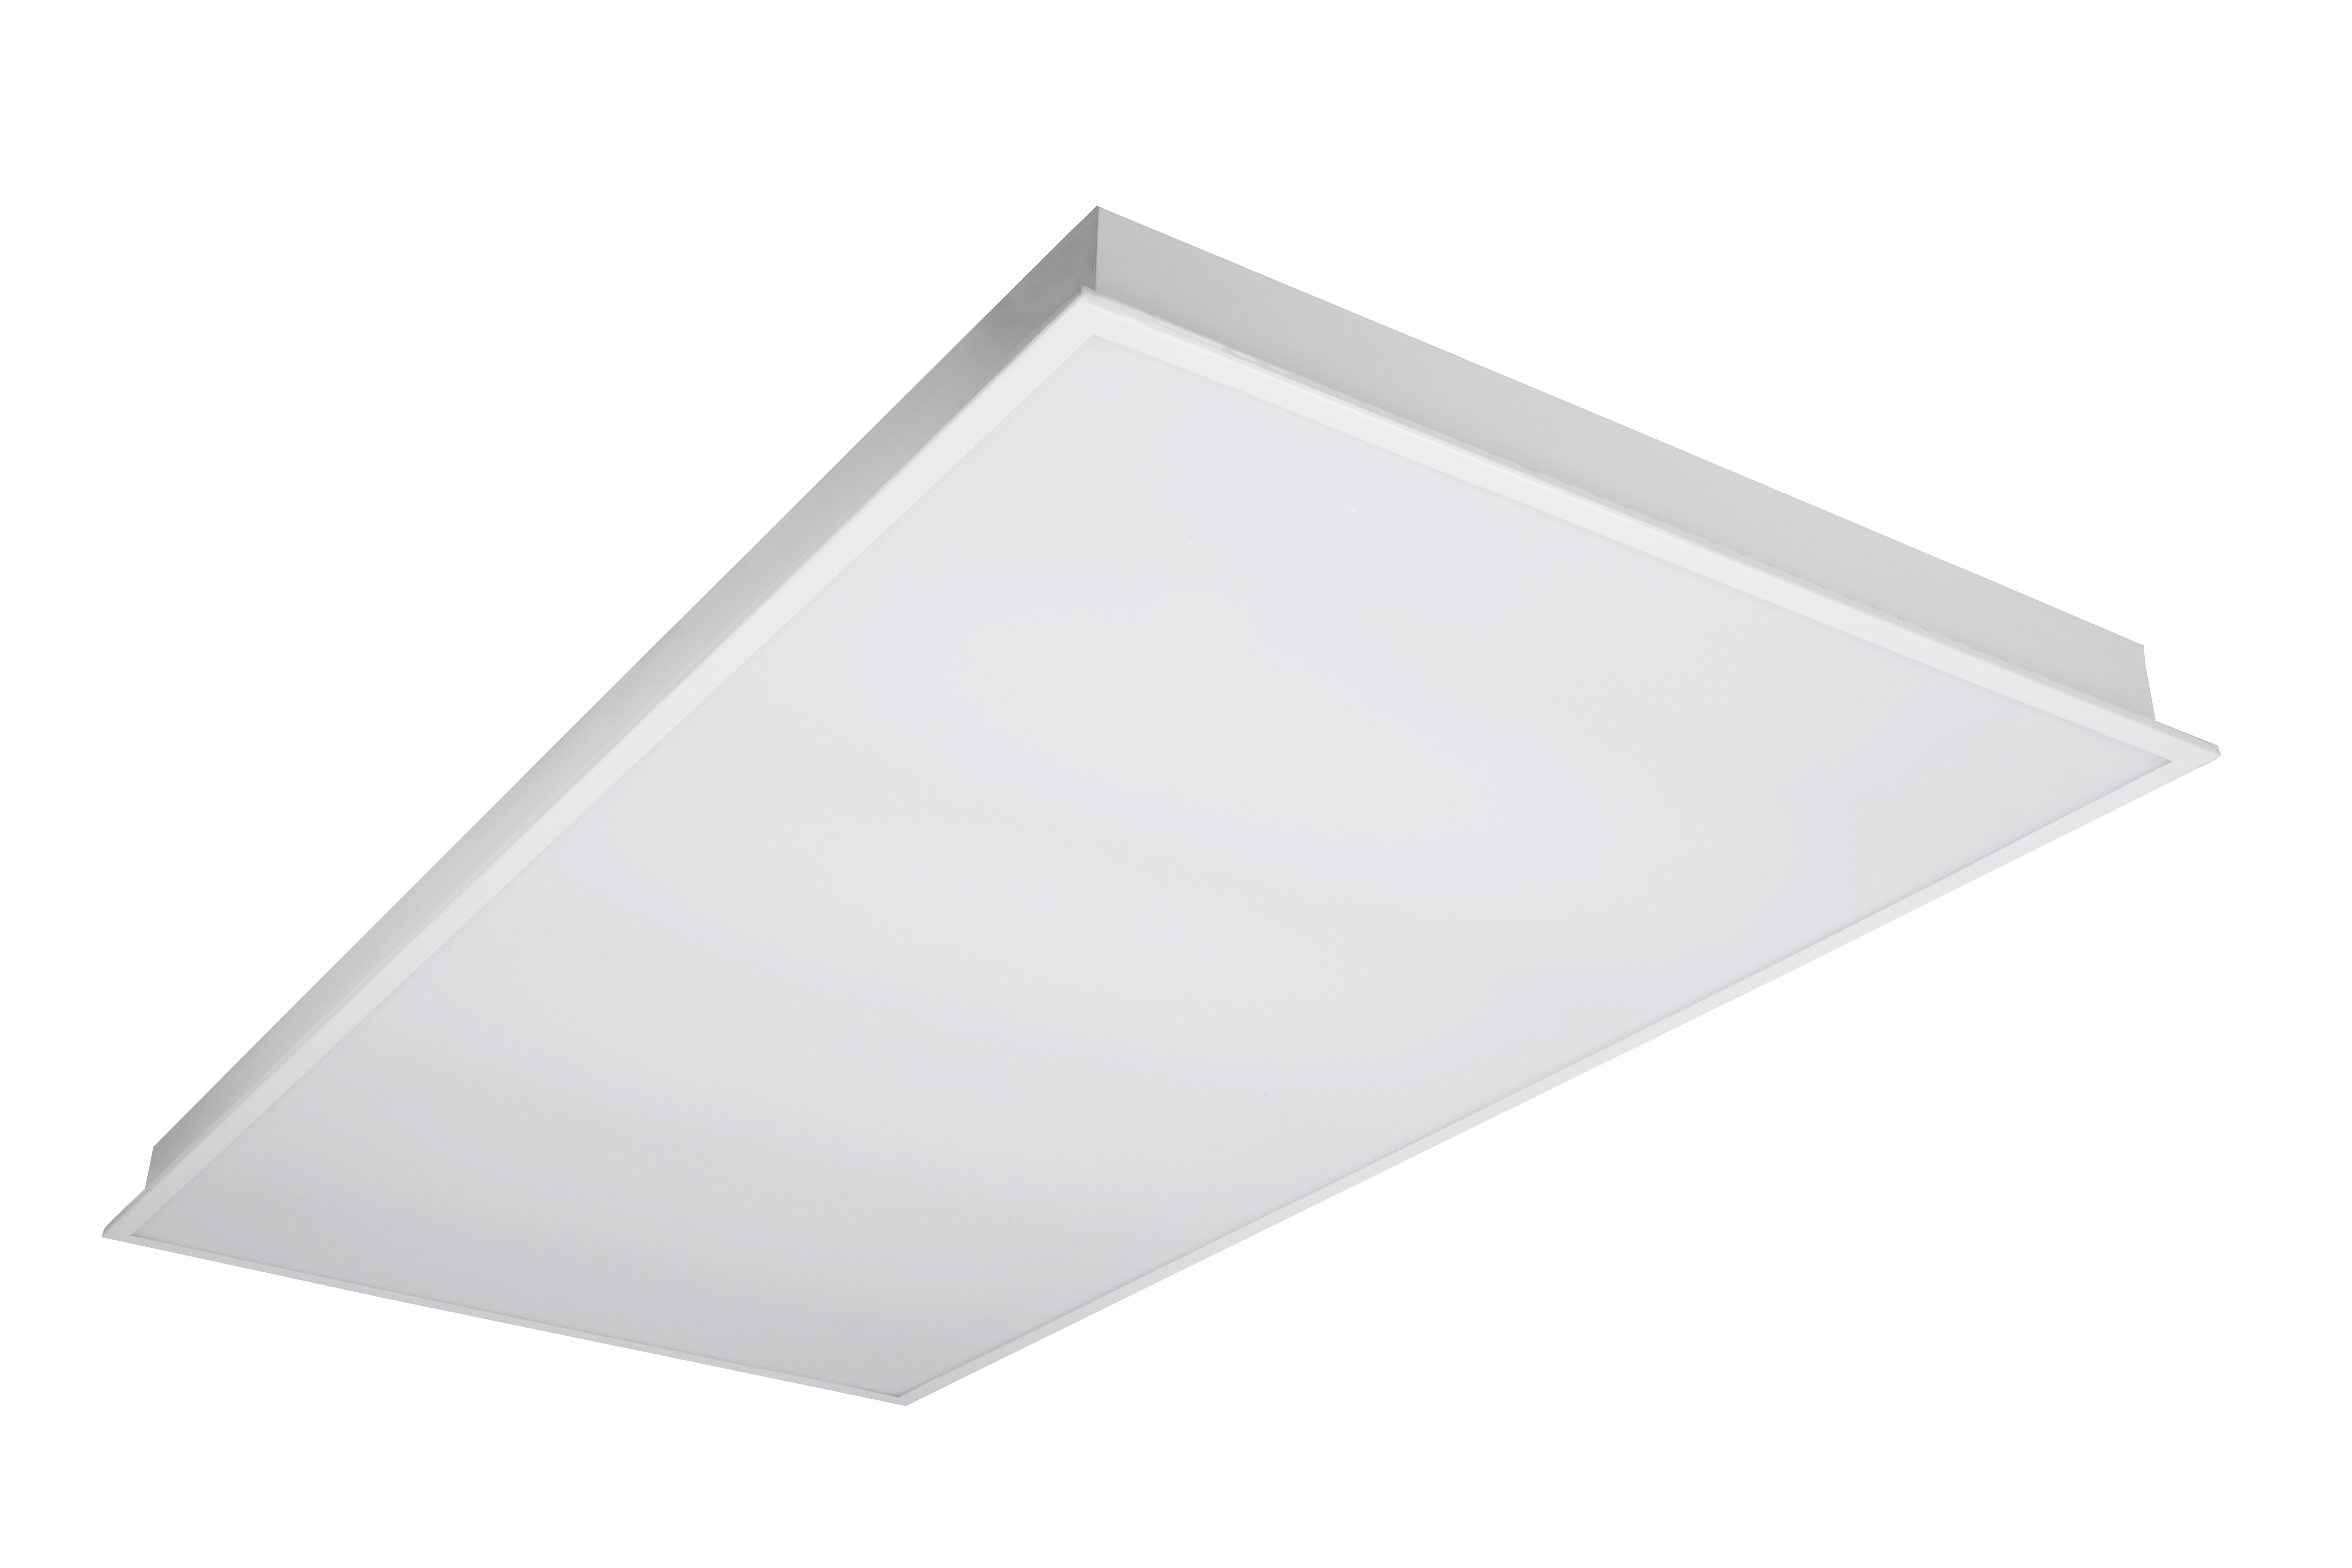 24FPL45/840/LED 81943 LED FLAT PANEL 2X4 45W 4000K 0-10V DIMMABLE